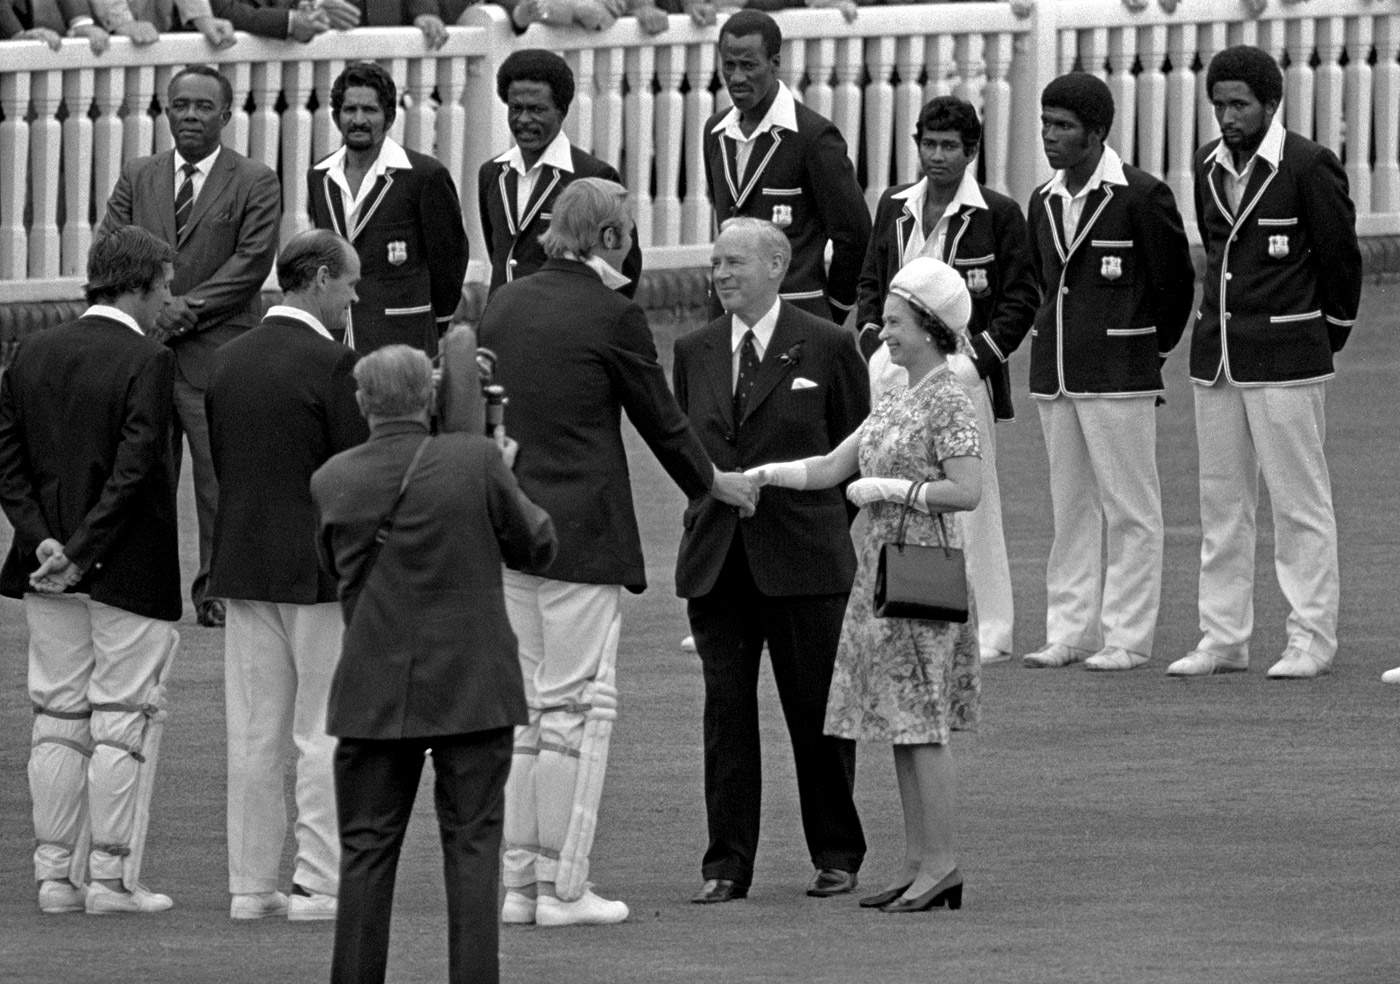 England captain Tony Greig is introduced to the Queen by Cecil Paris, the president of the MCC